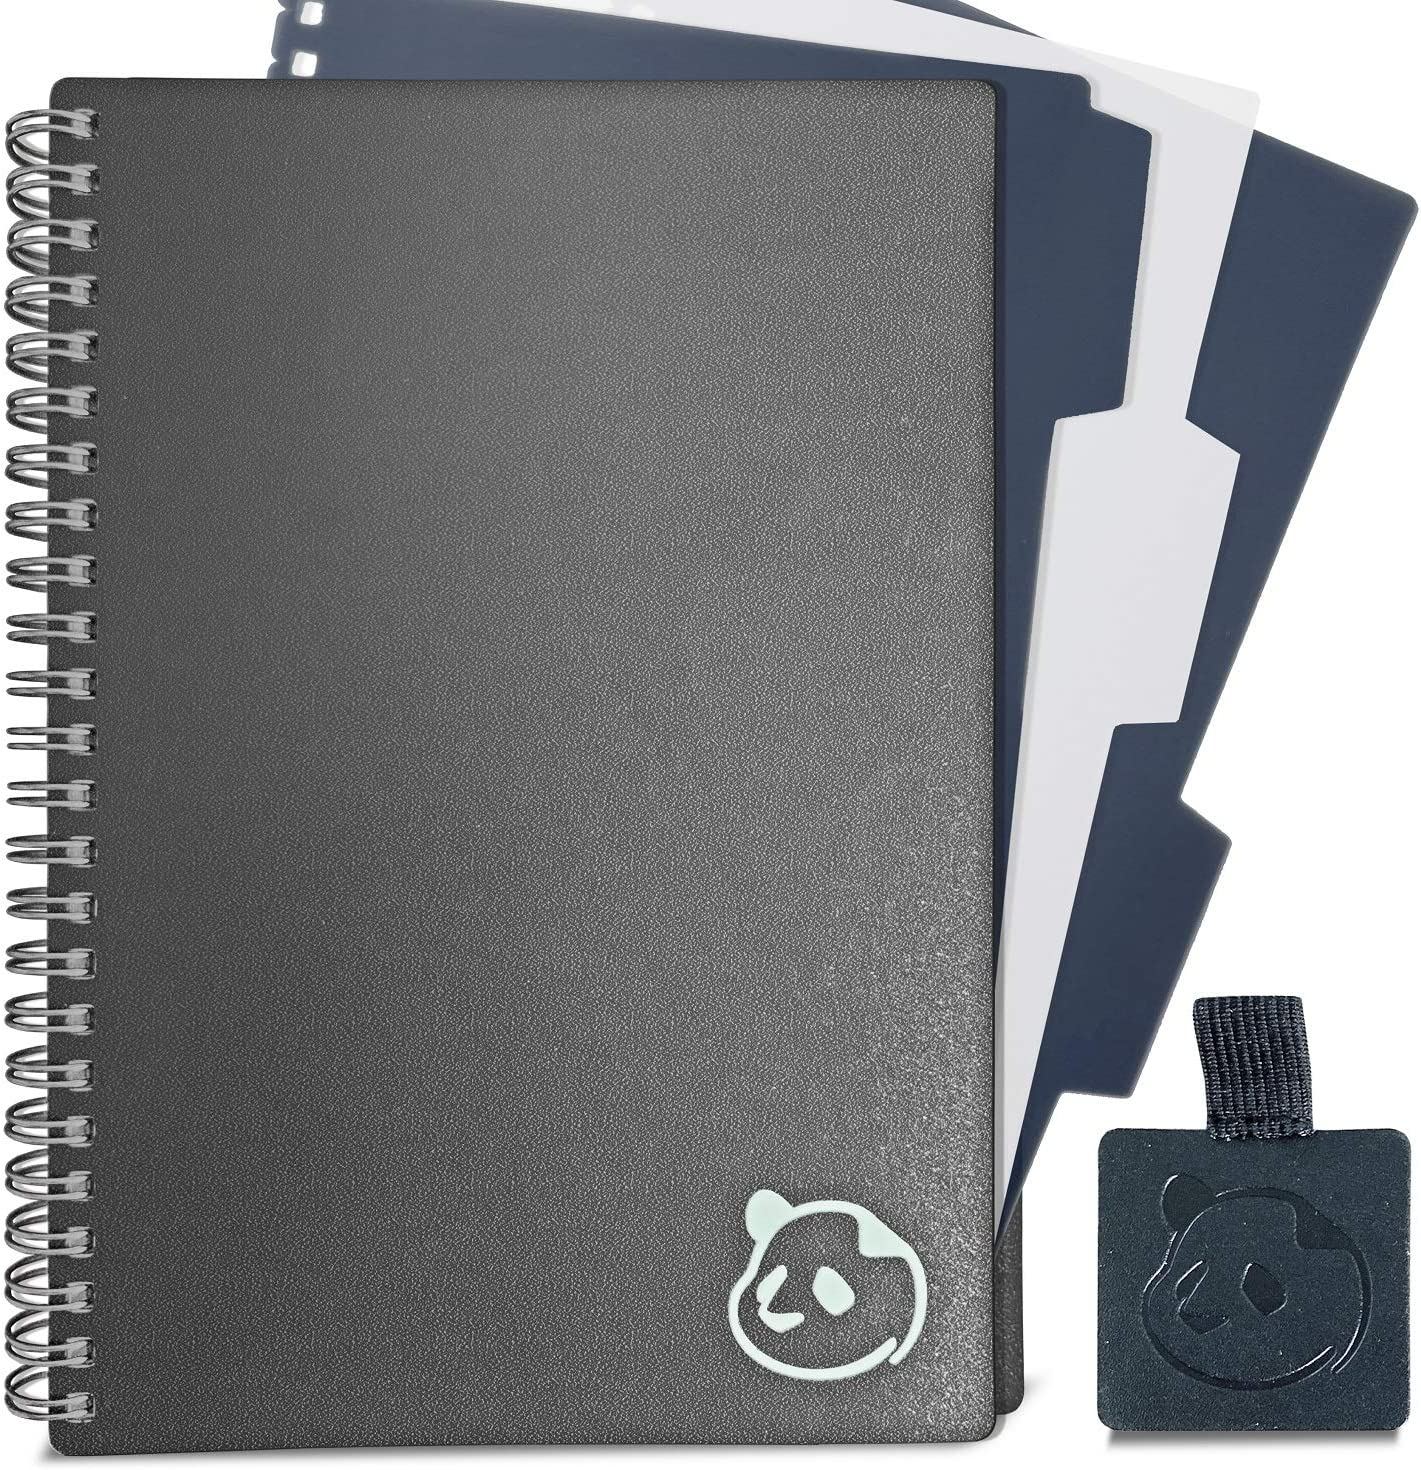 """Daily Planner 2.0 - by Panda Planner 2020-2021 - Monthly Calendar, Weekly Organizer and Day Planner Sections - Undated and Wire Binding - 3 Month Planner - 8.25"""" x 5.75"""" - Gray : Office Products"""